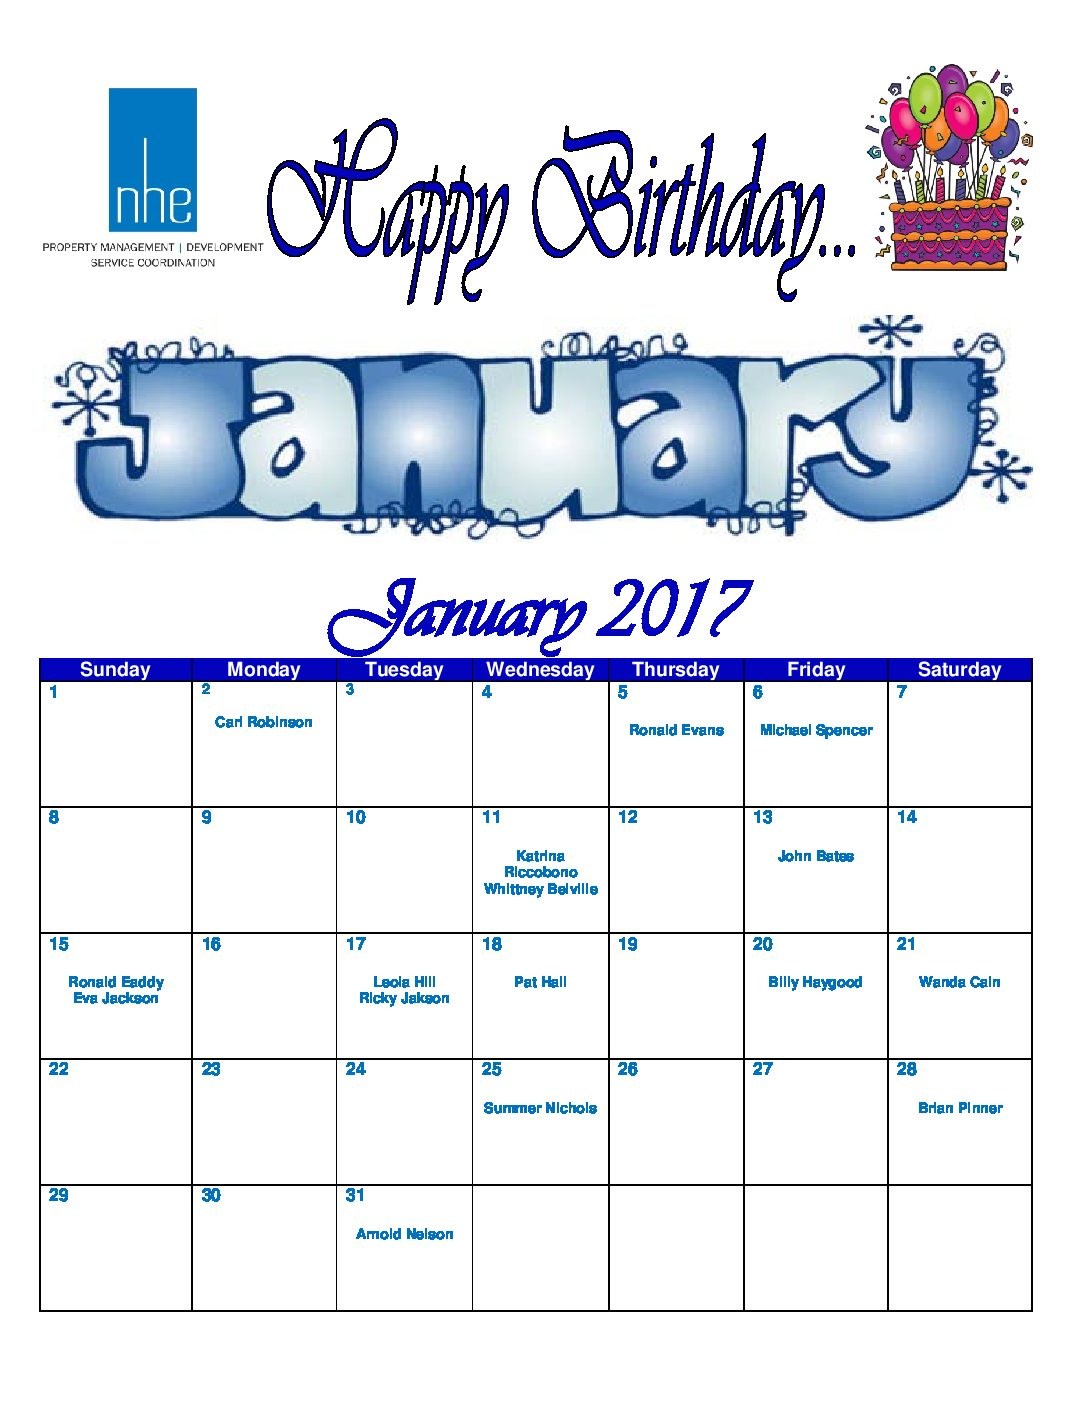 January 2017 Employee Birthday Calendar